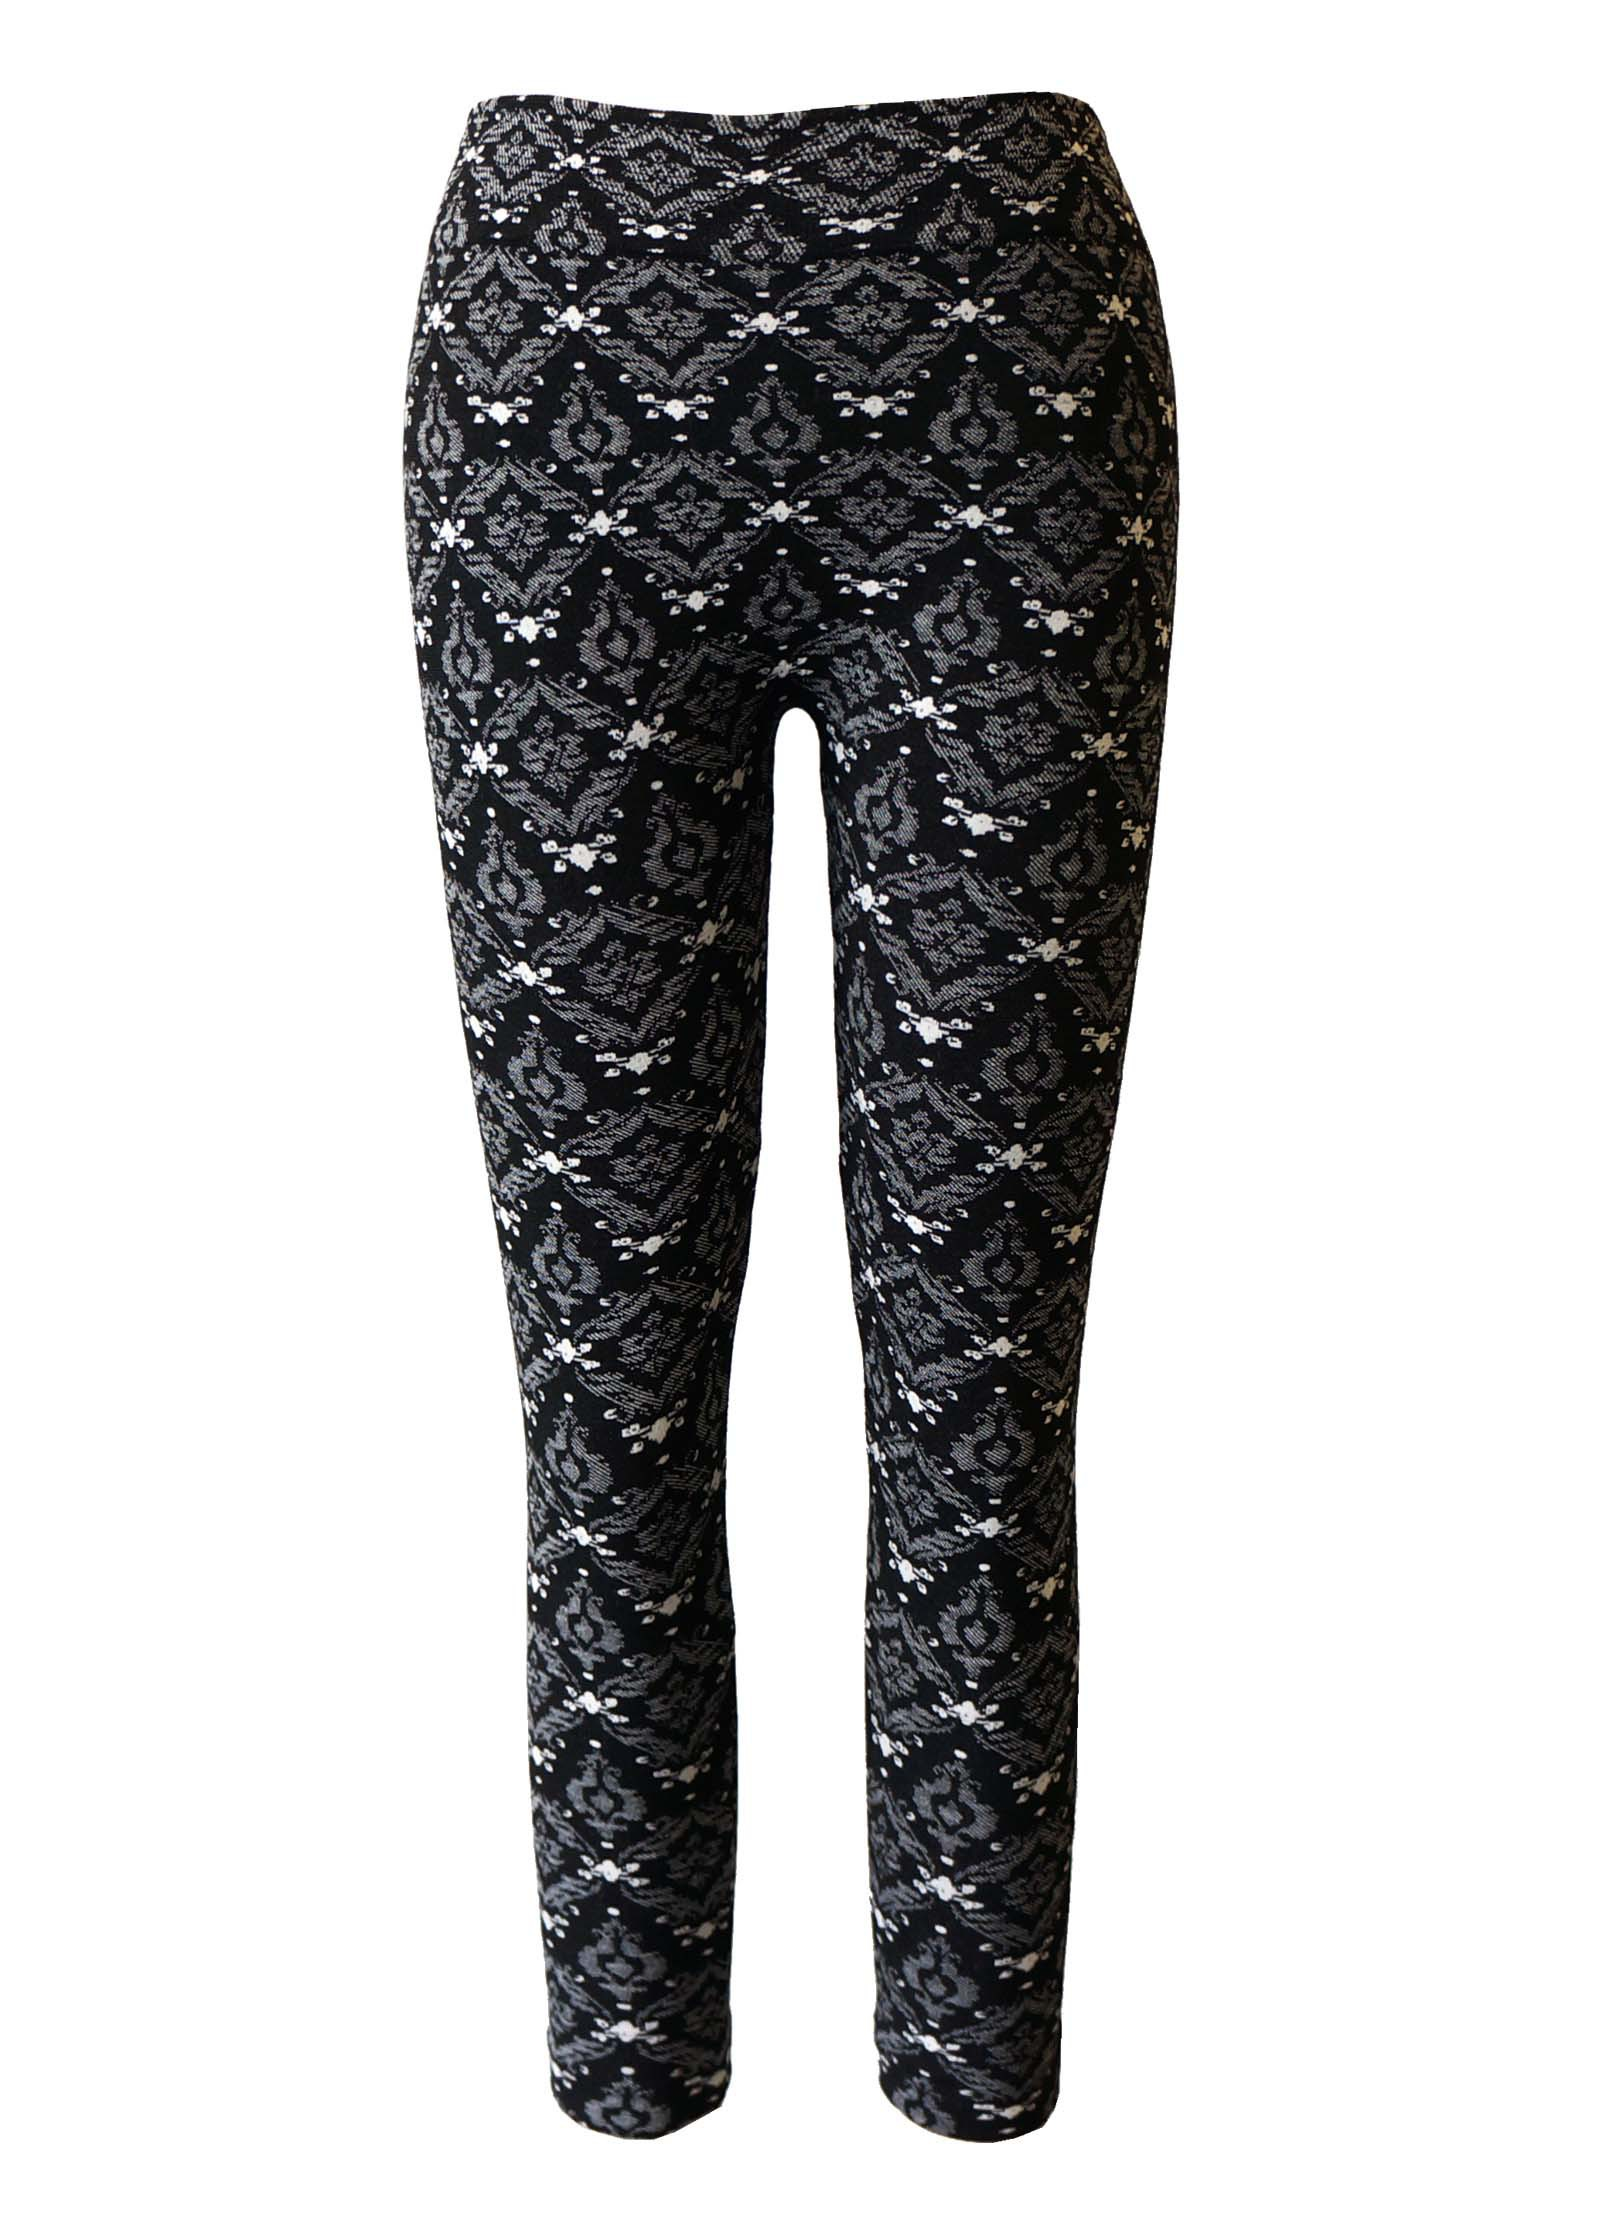 KIDS BLACK/WHITE WALLPAPER JACQUARD SEAMLESS FLEECE LEGGING(SIZE:4/6X) #KSJ15FL11